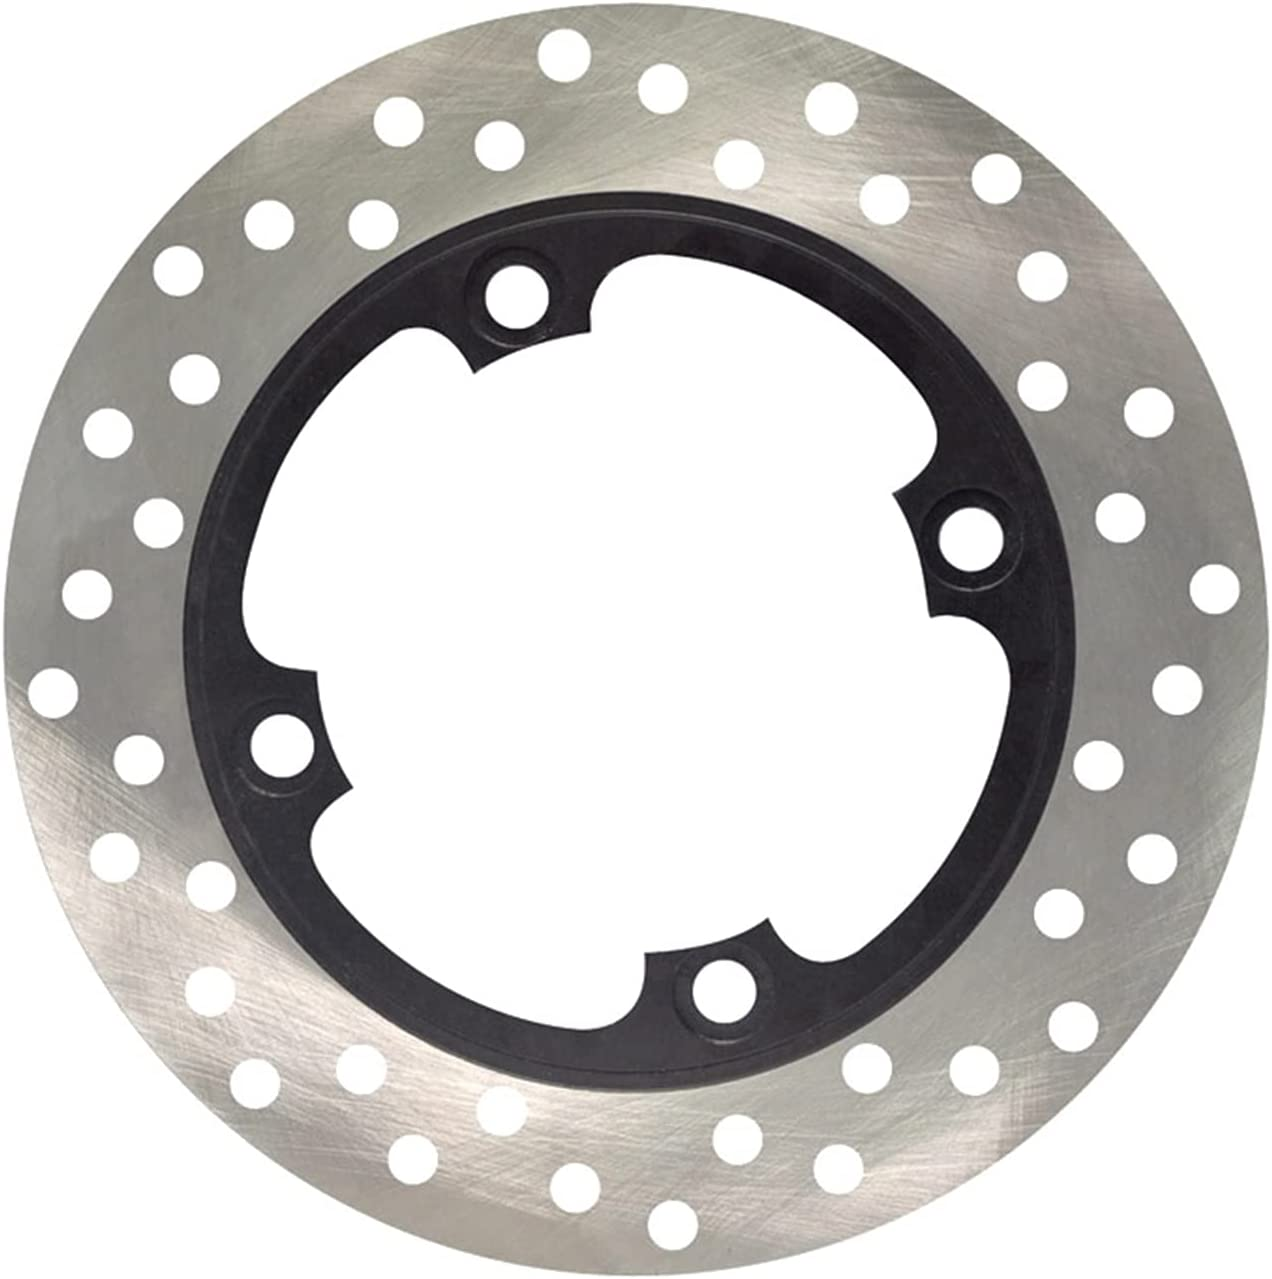 Motorcycle Brake Max 73% OFF disc Rotor for Disc mart Rear